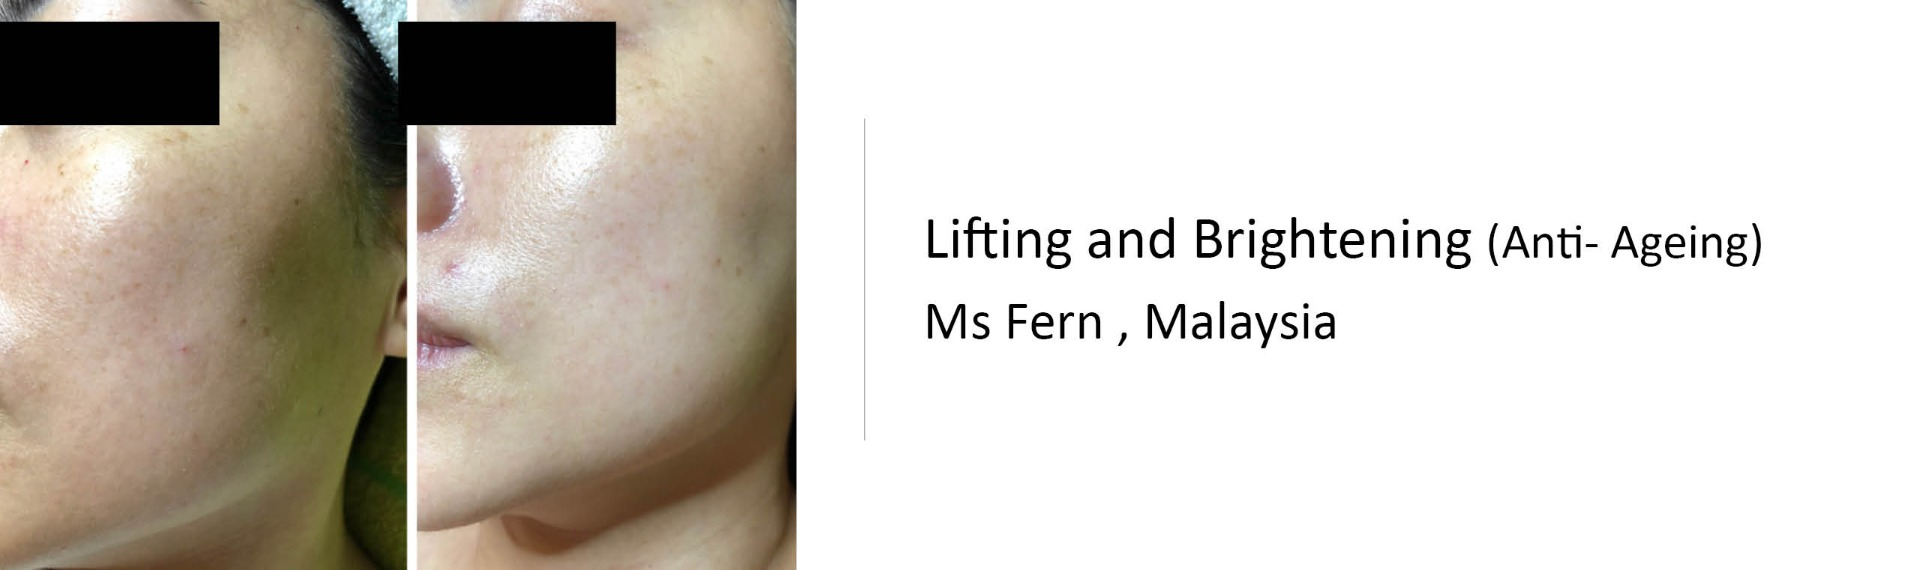 11 Lifting and Brightening (Anti- Ageing)